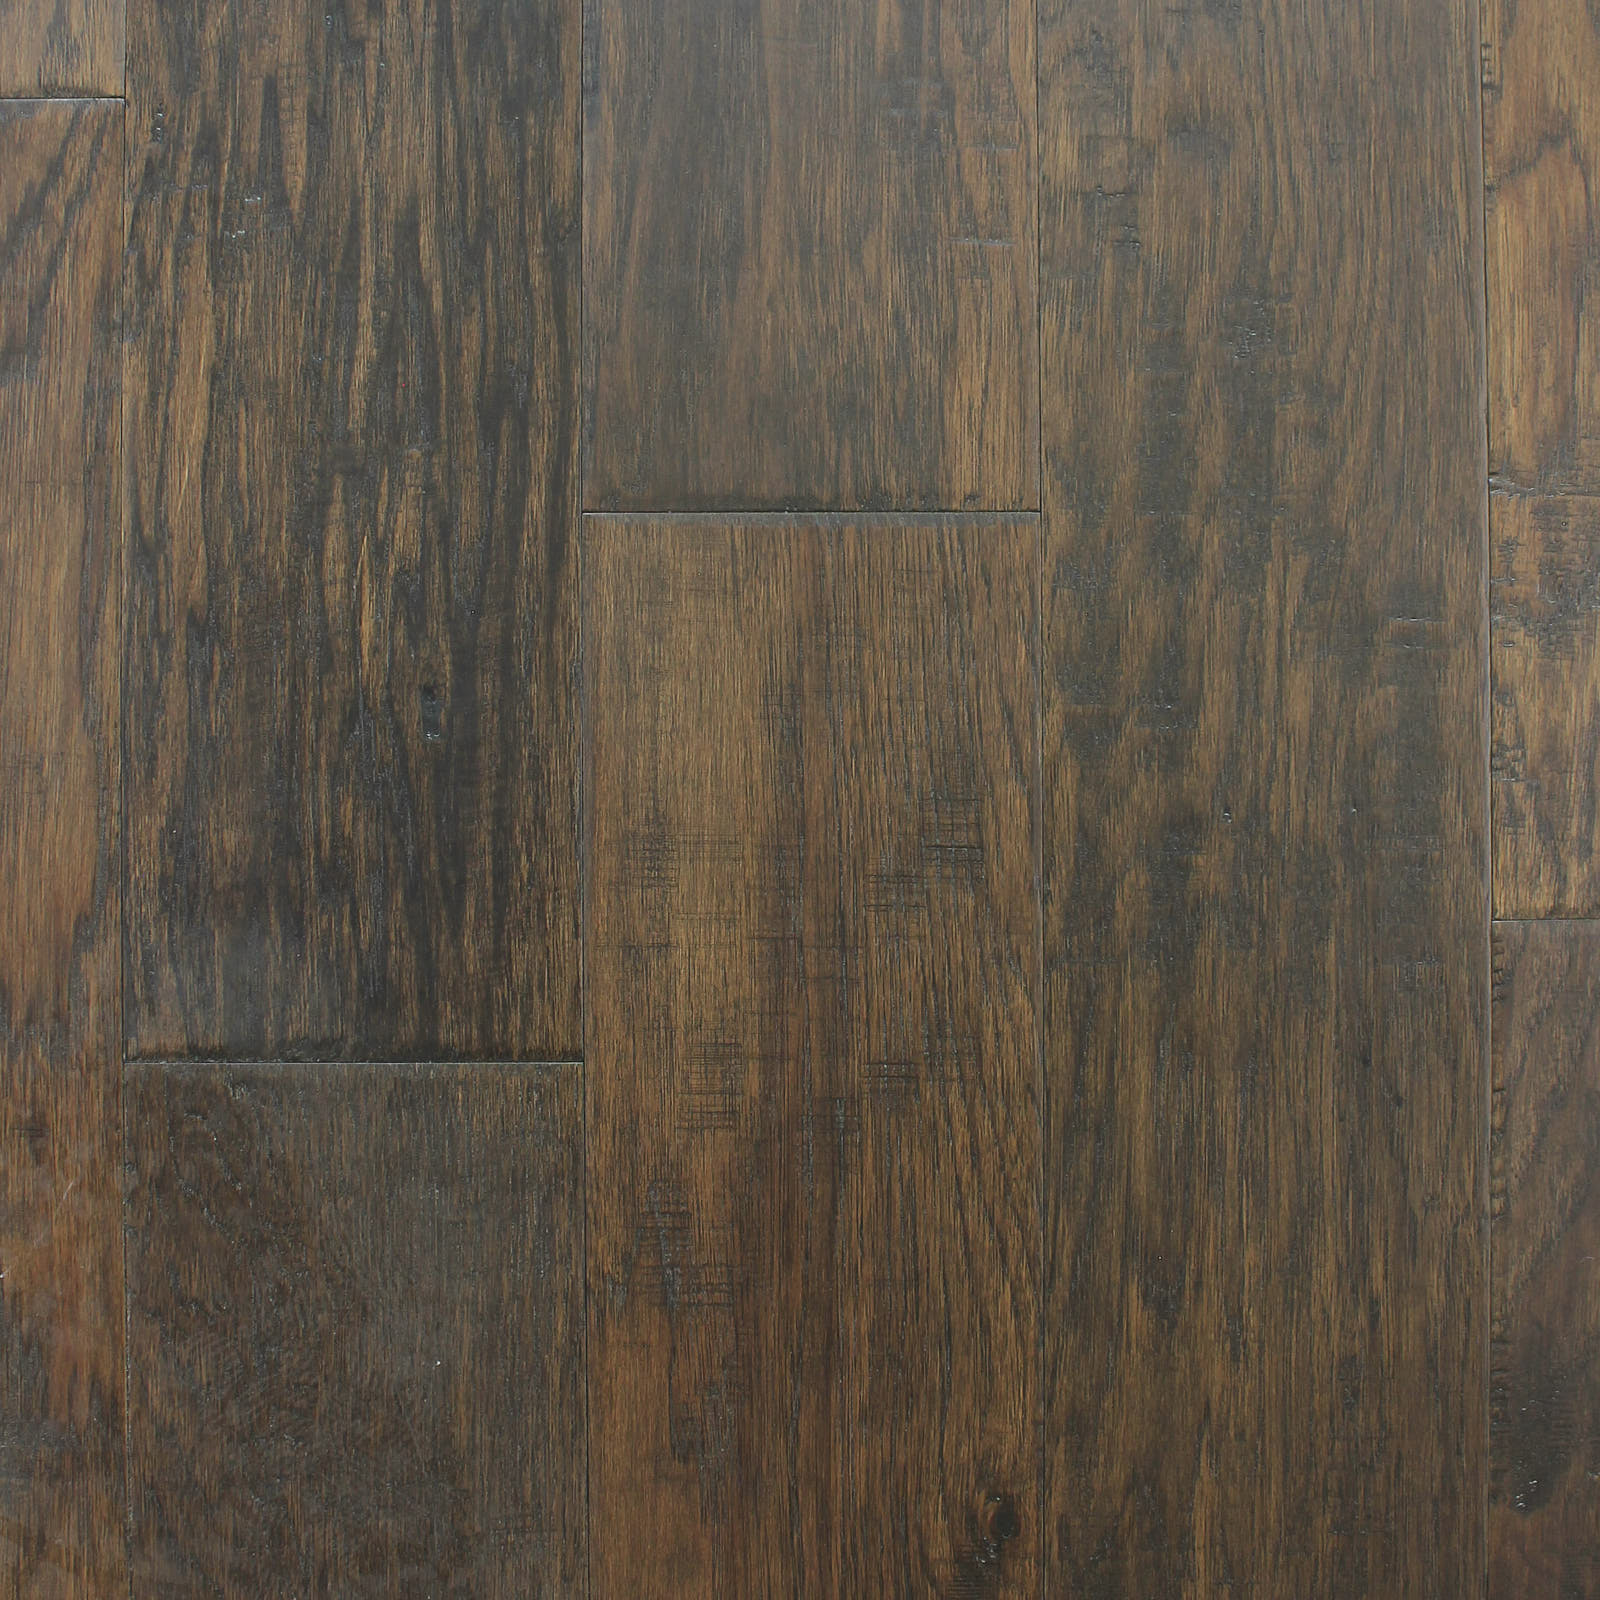 Wrangler Plank Outlaw Engineered Hardwood Flooring